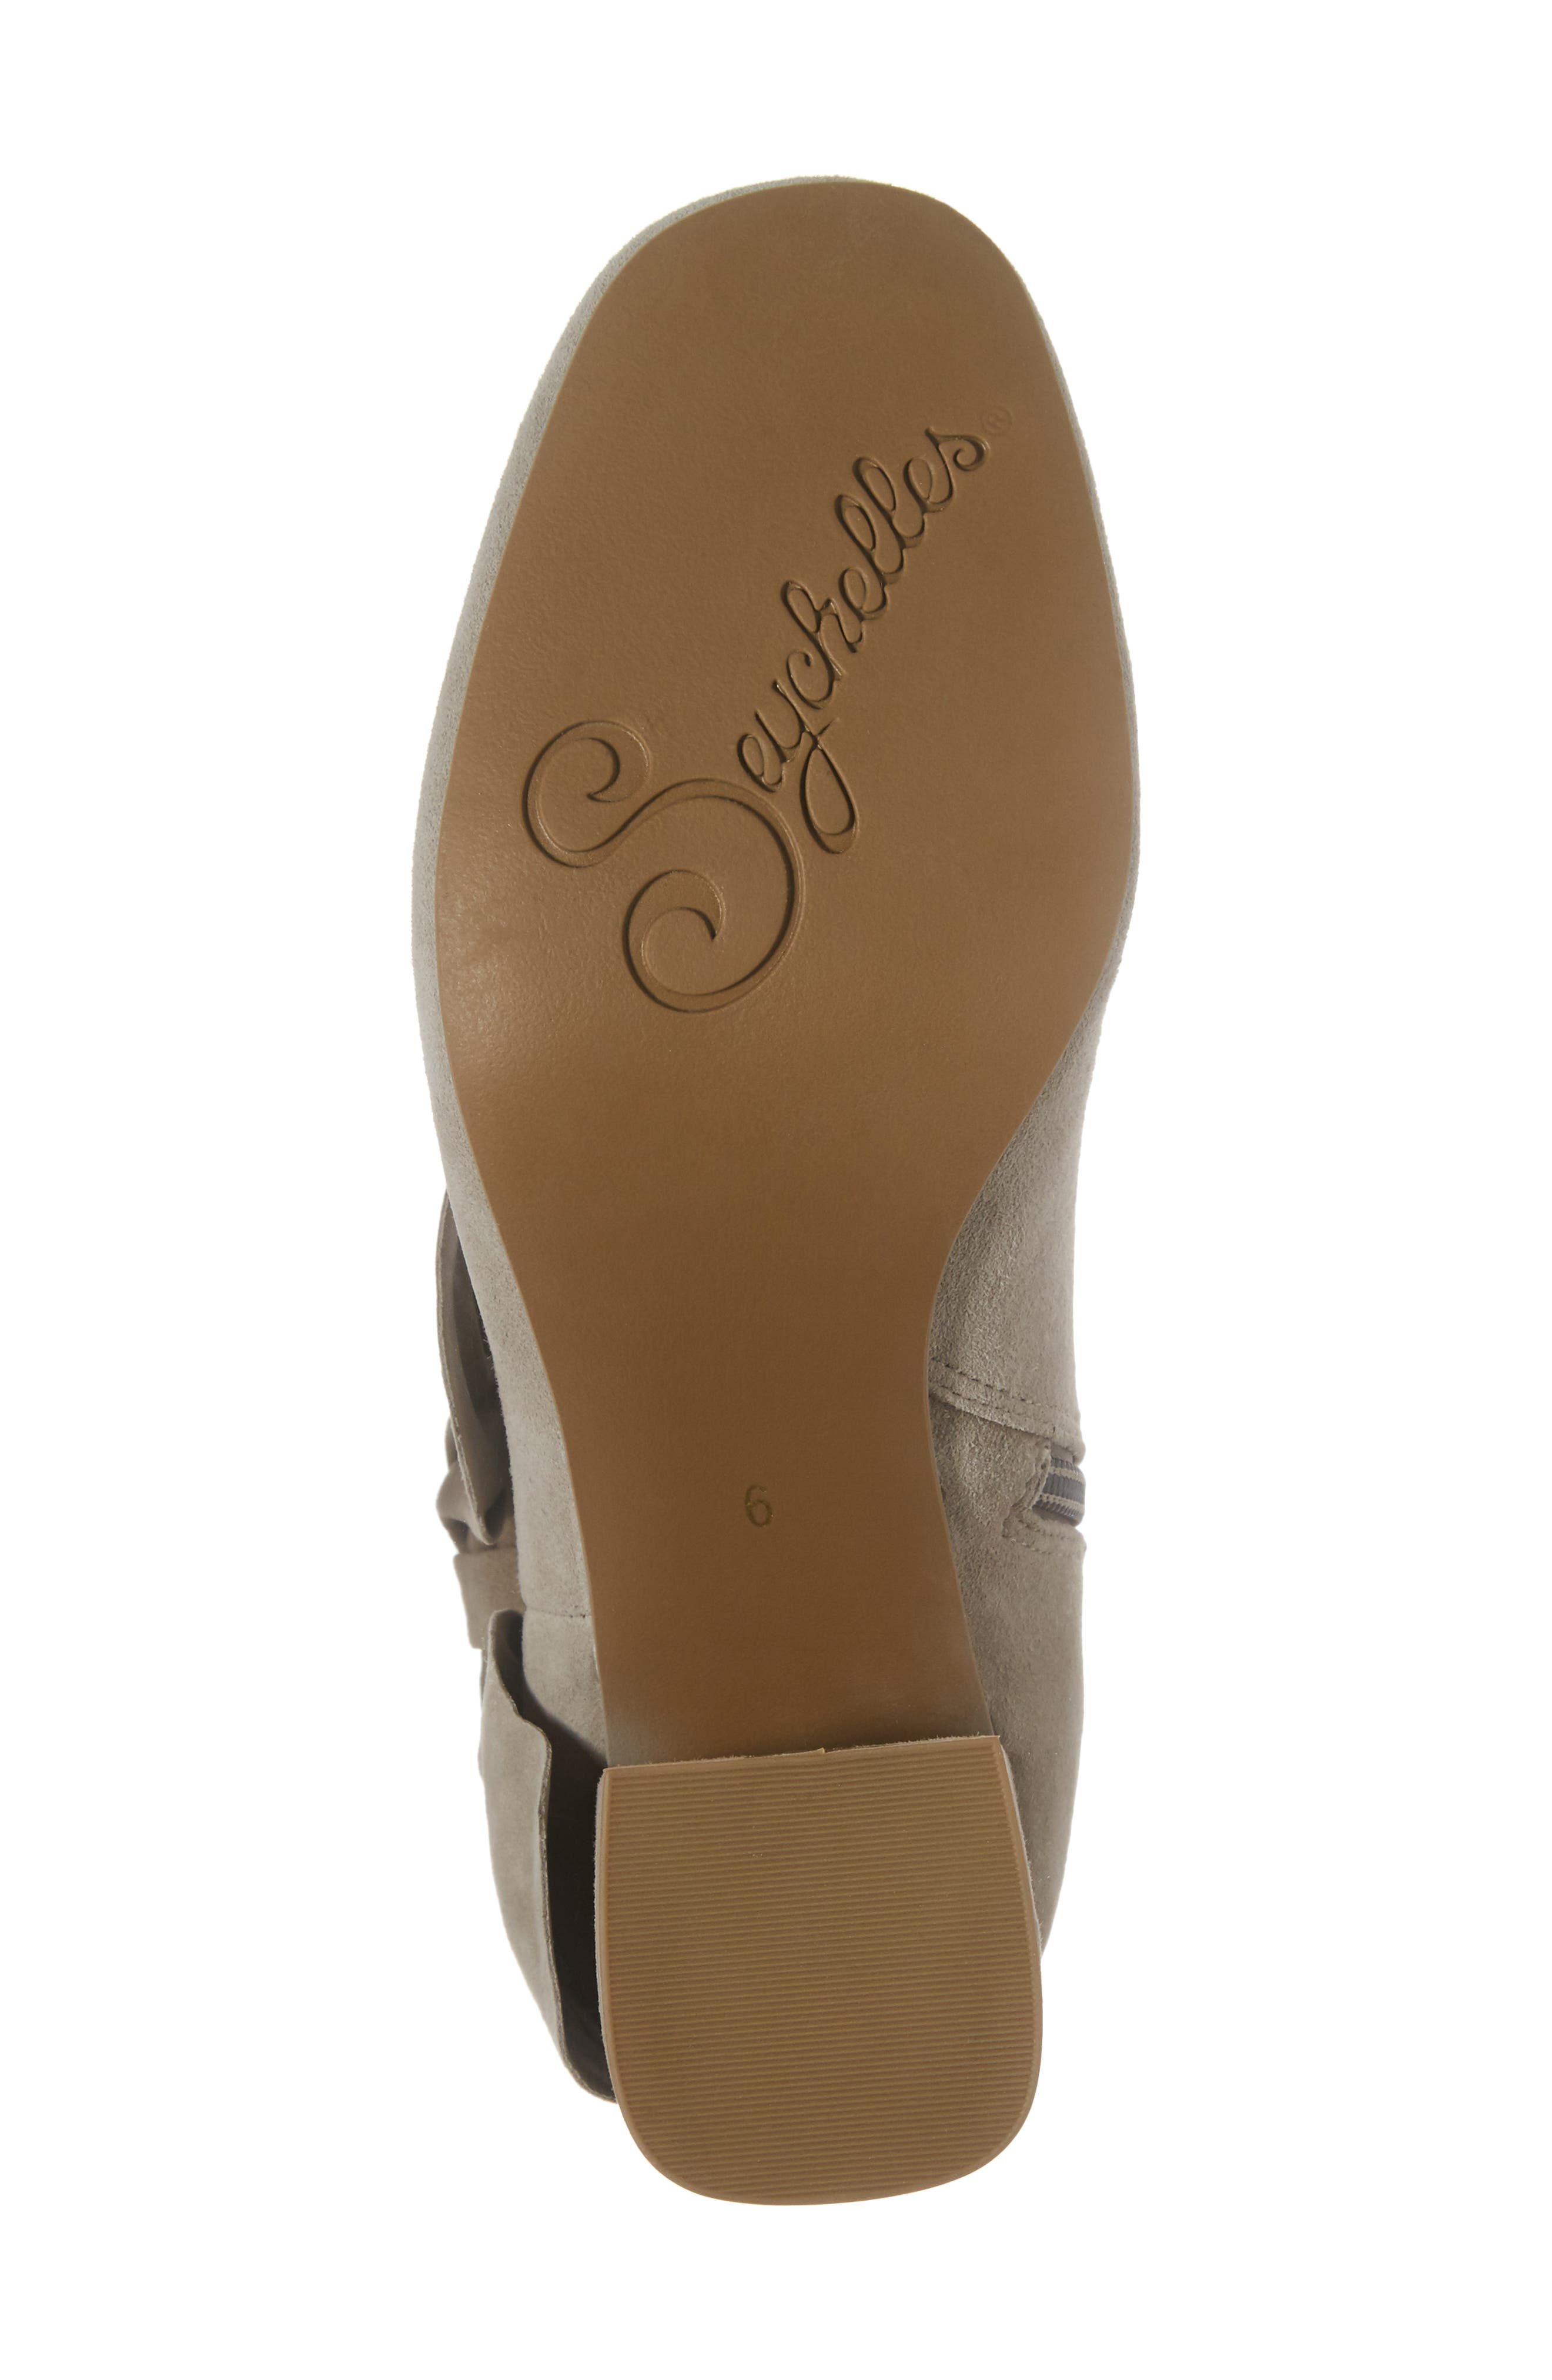 Catwalk Bootie,                             Alternate thumbnail 6, color,                             Taupe Suede